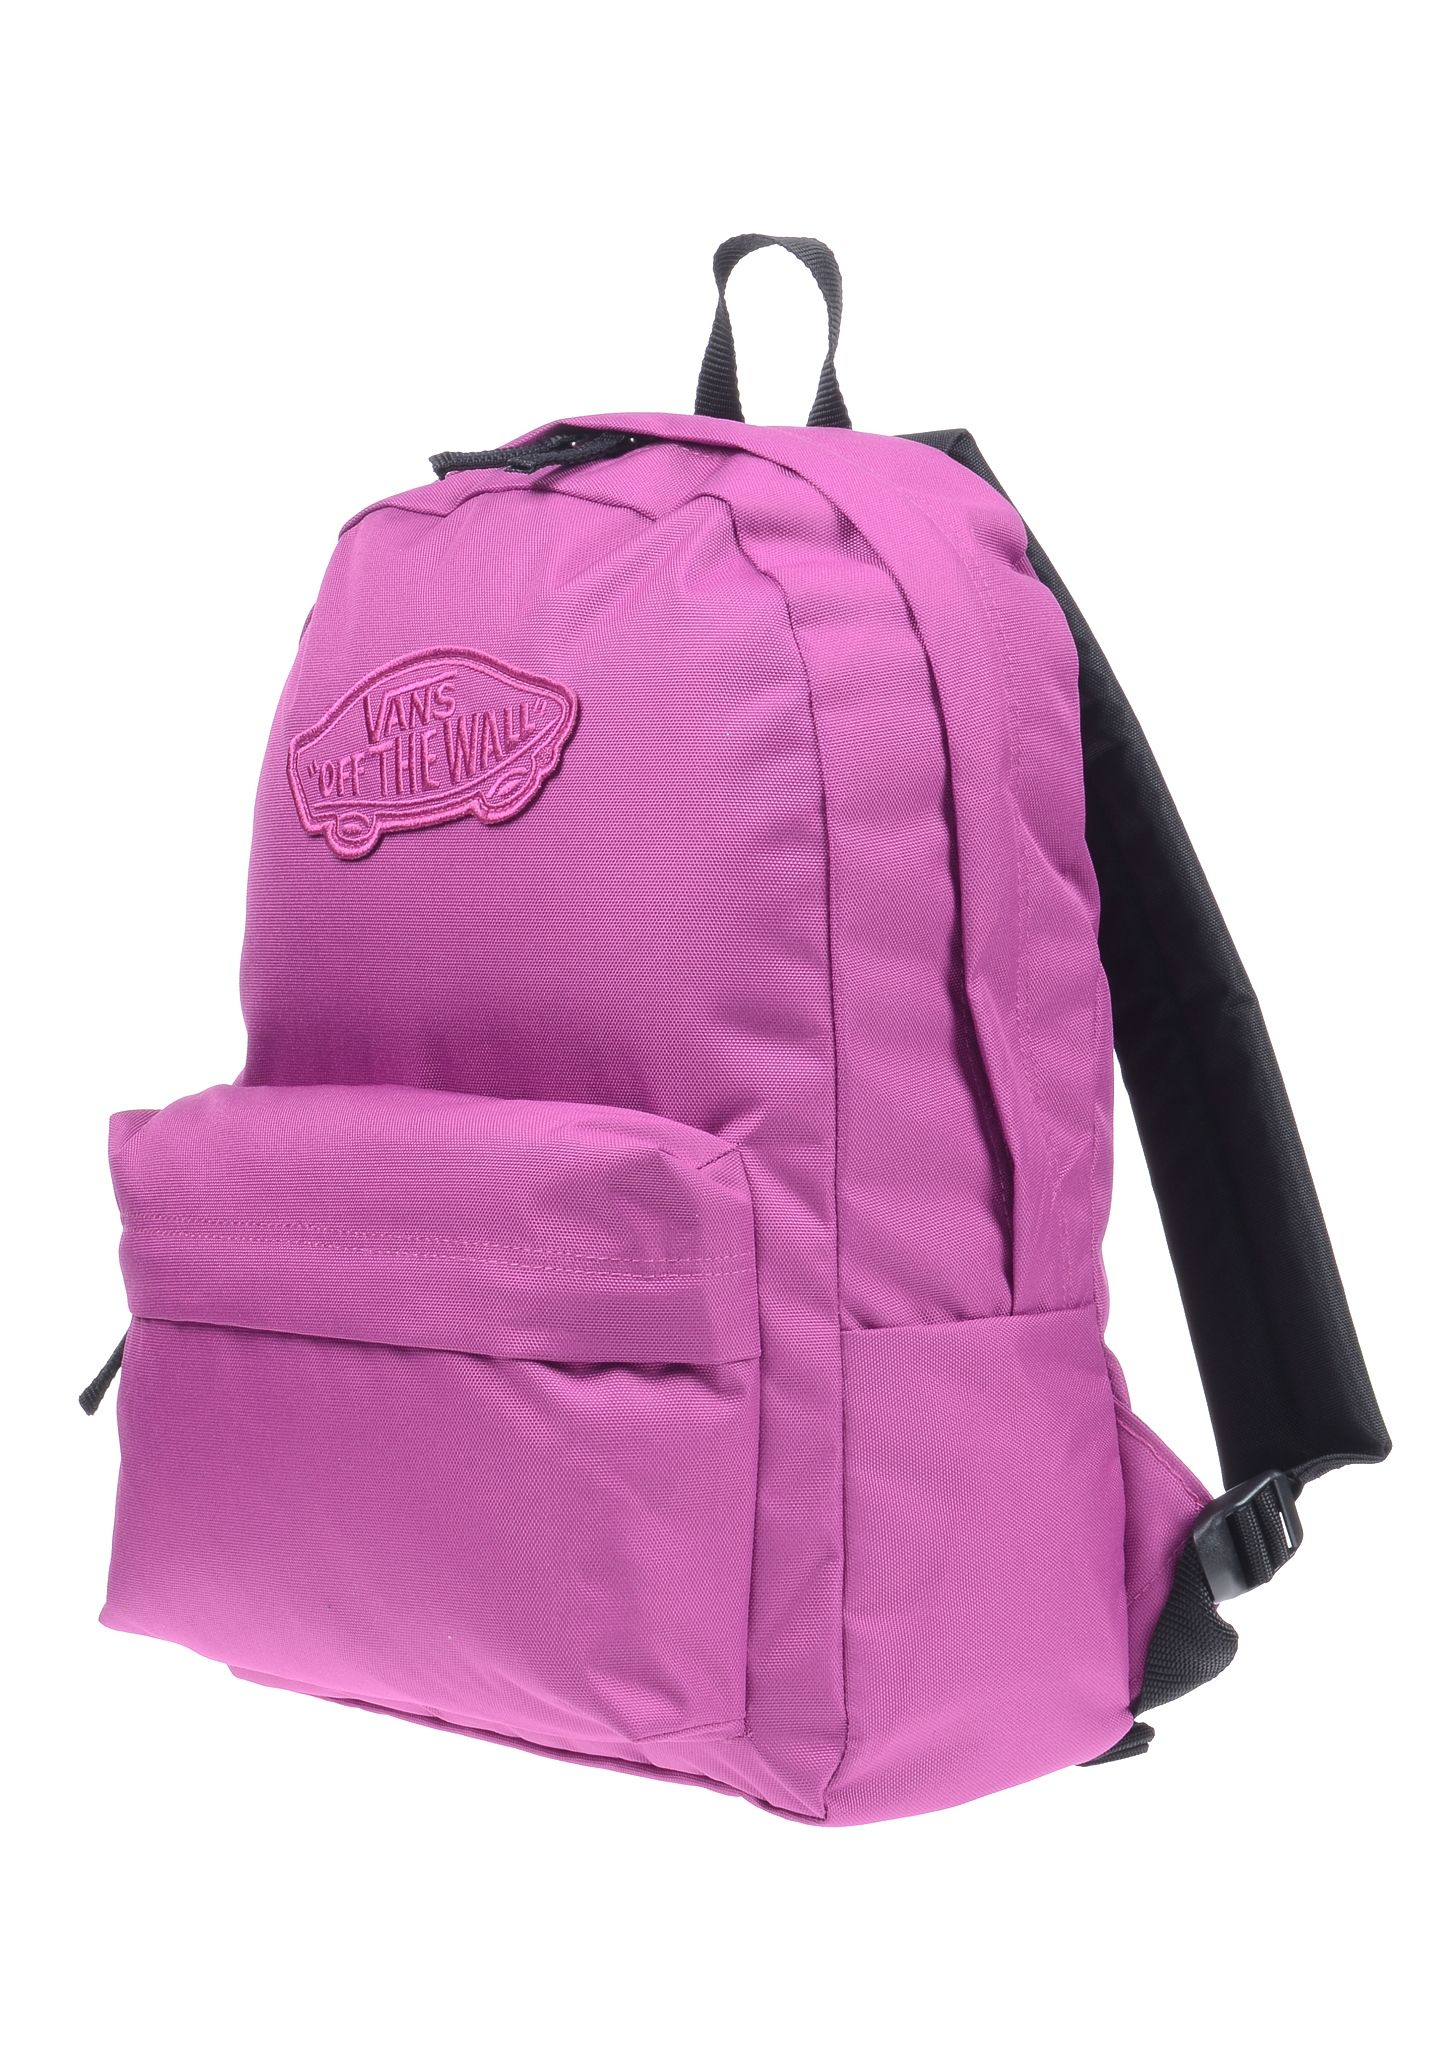 Vans Realm - Backpack for Women - Pink - Planet Sports 8d8467587ae